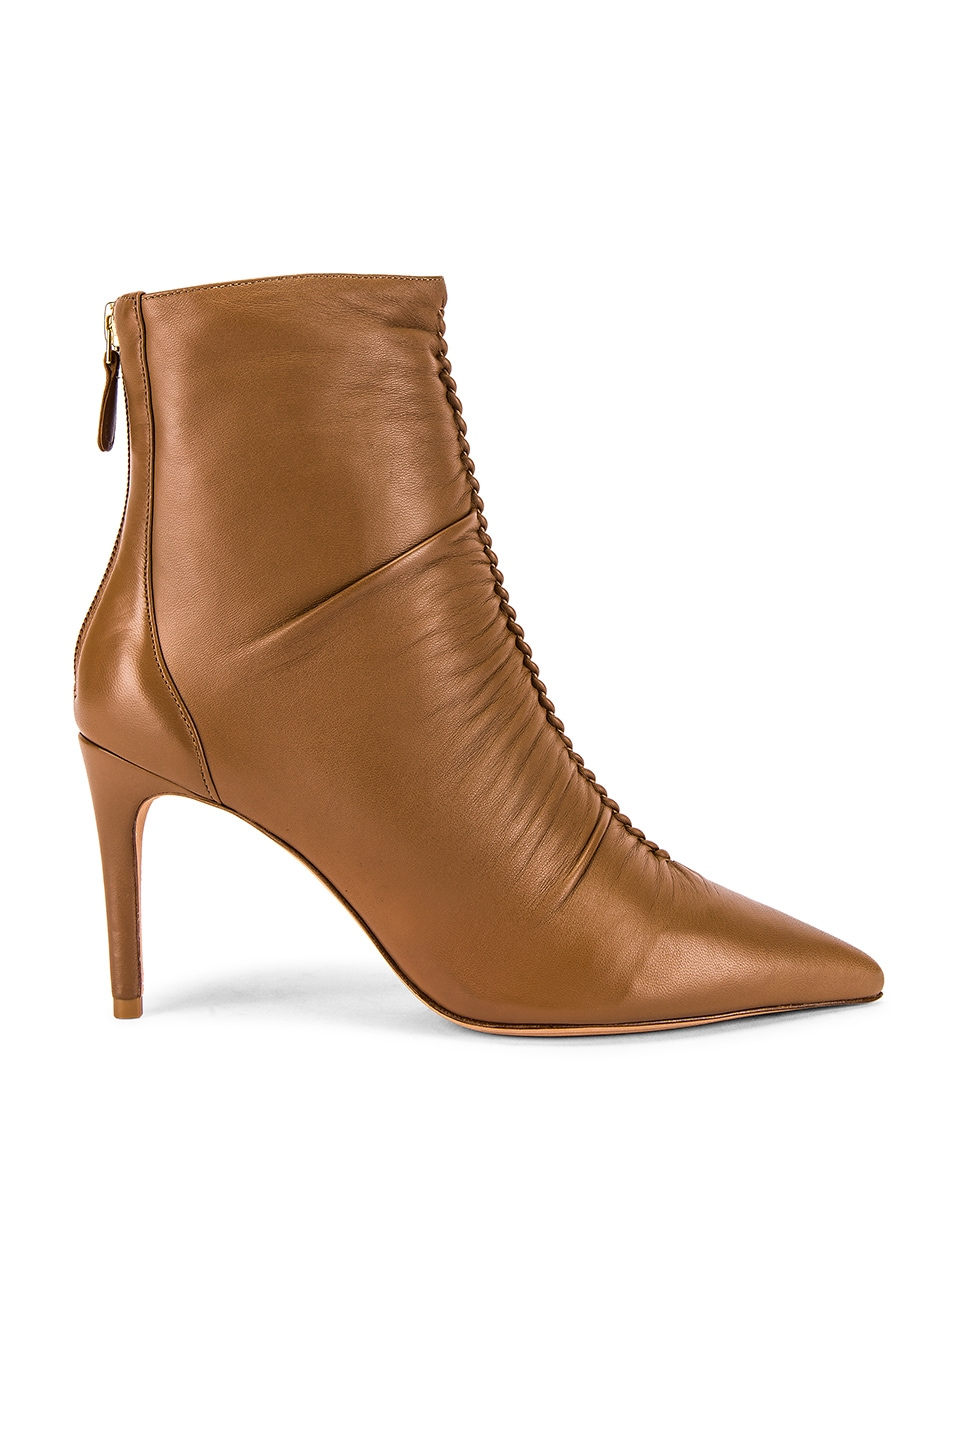 Alexandre Birman Susanna Bootie in Light Beige